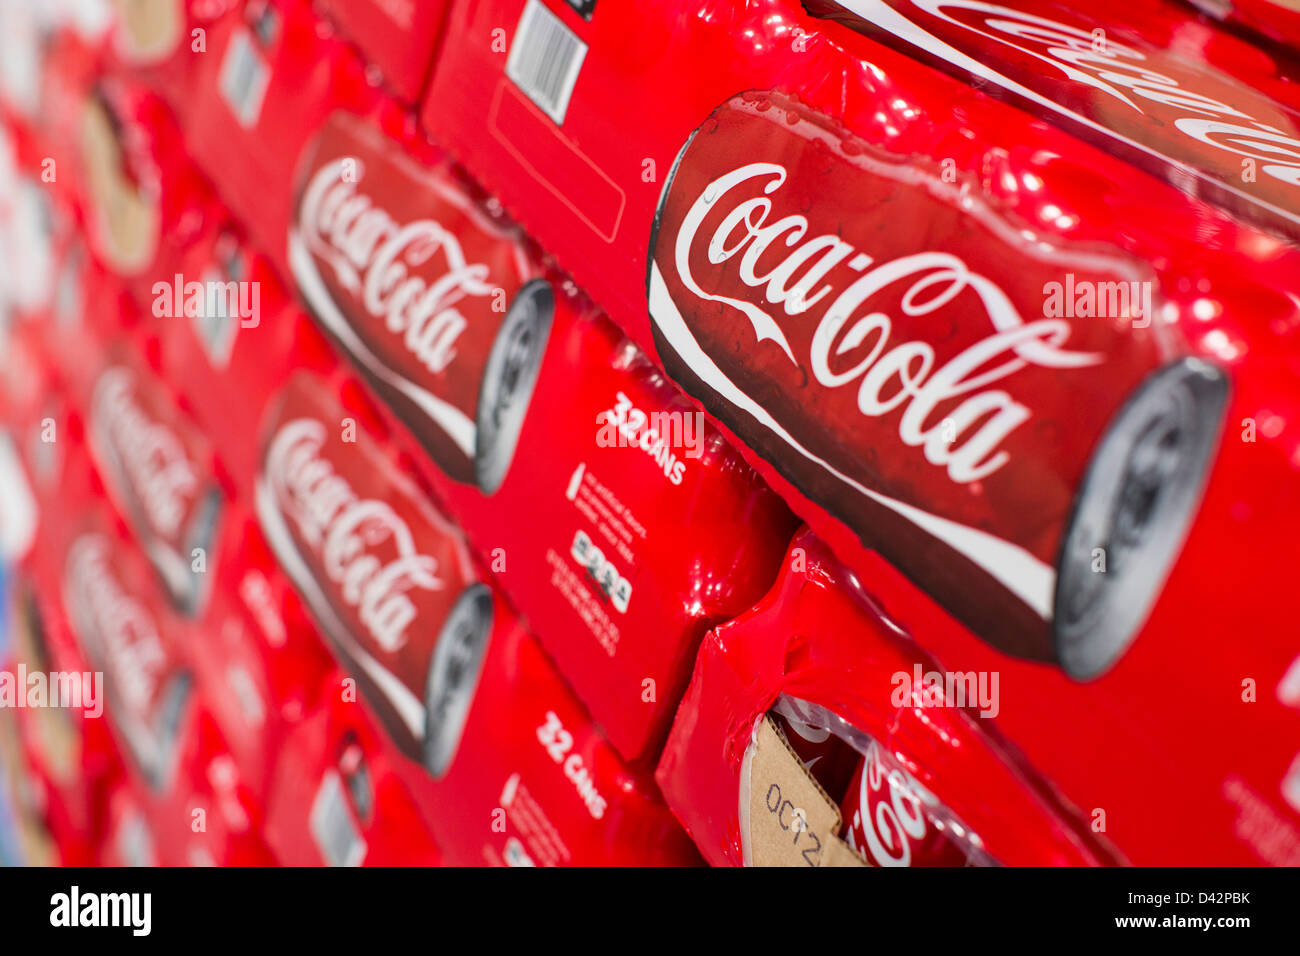 Coca cola products on display at a costco wholesale warehouse club coca cola products on display at a costco wholesale warehouse club thecheapjerseys Images